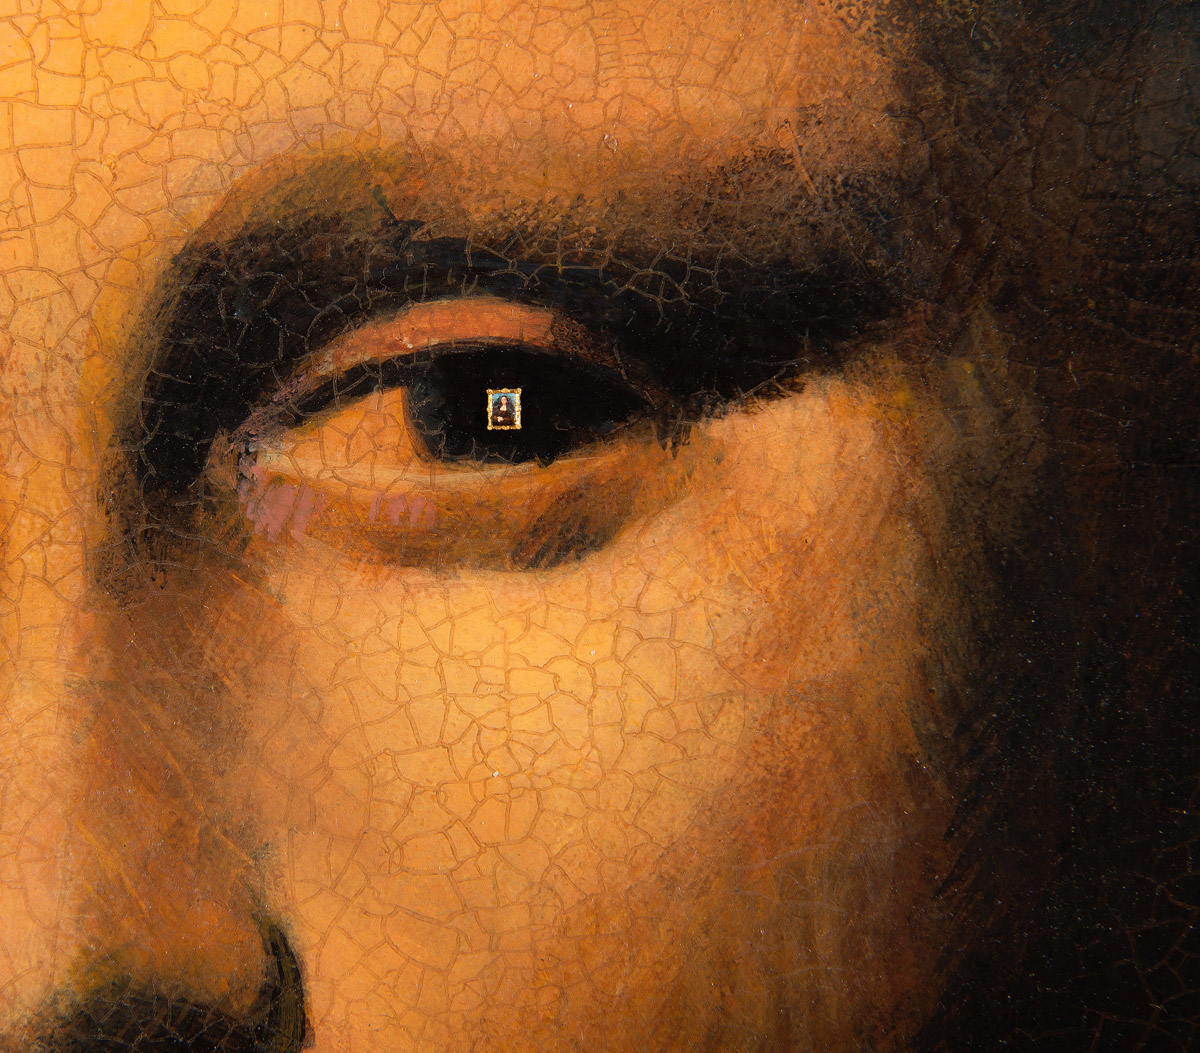 World S Smallest Mona Lisa In Eye Of Forged Mona Lisa